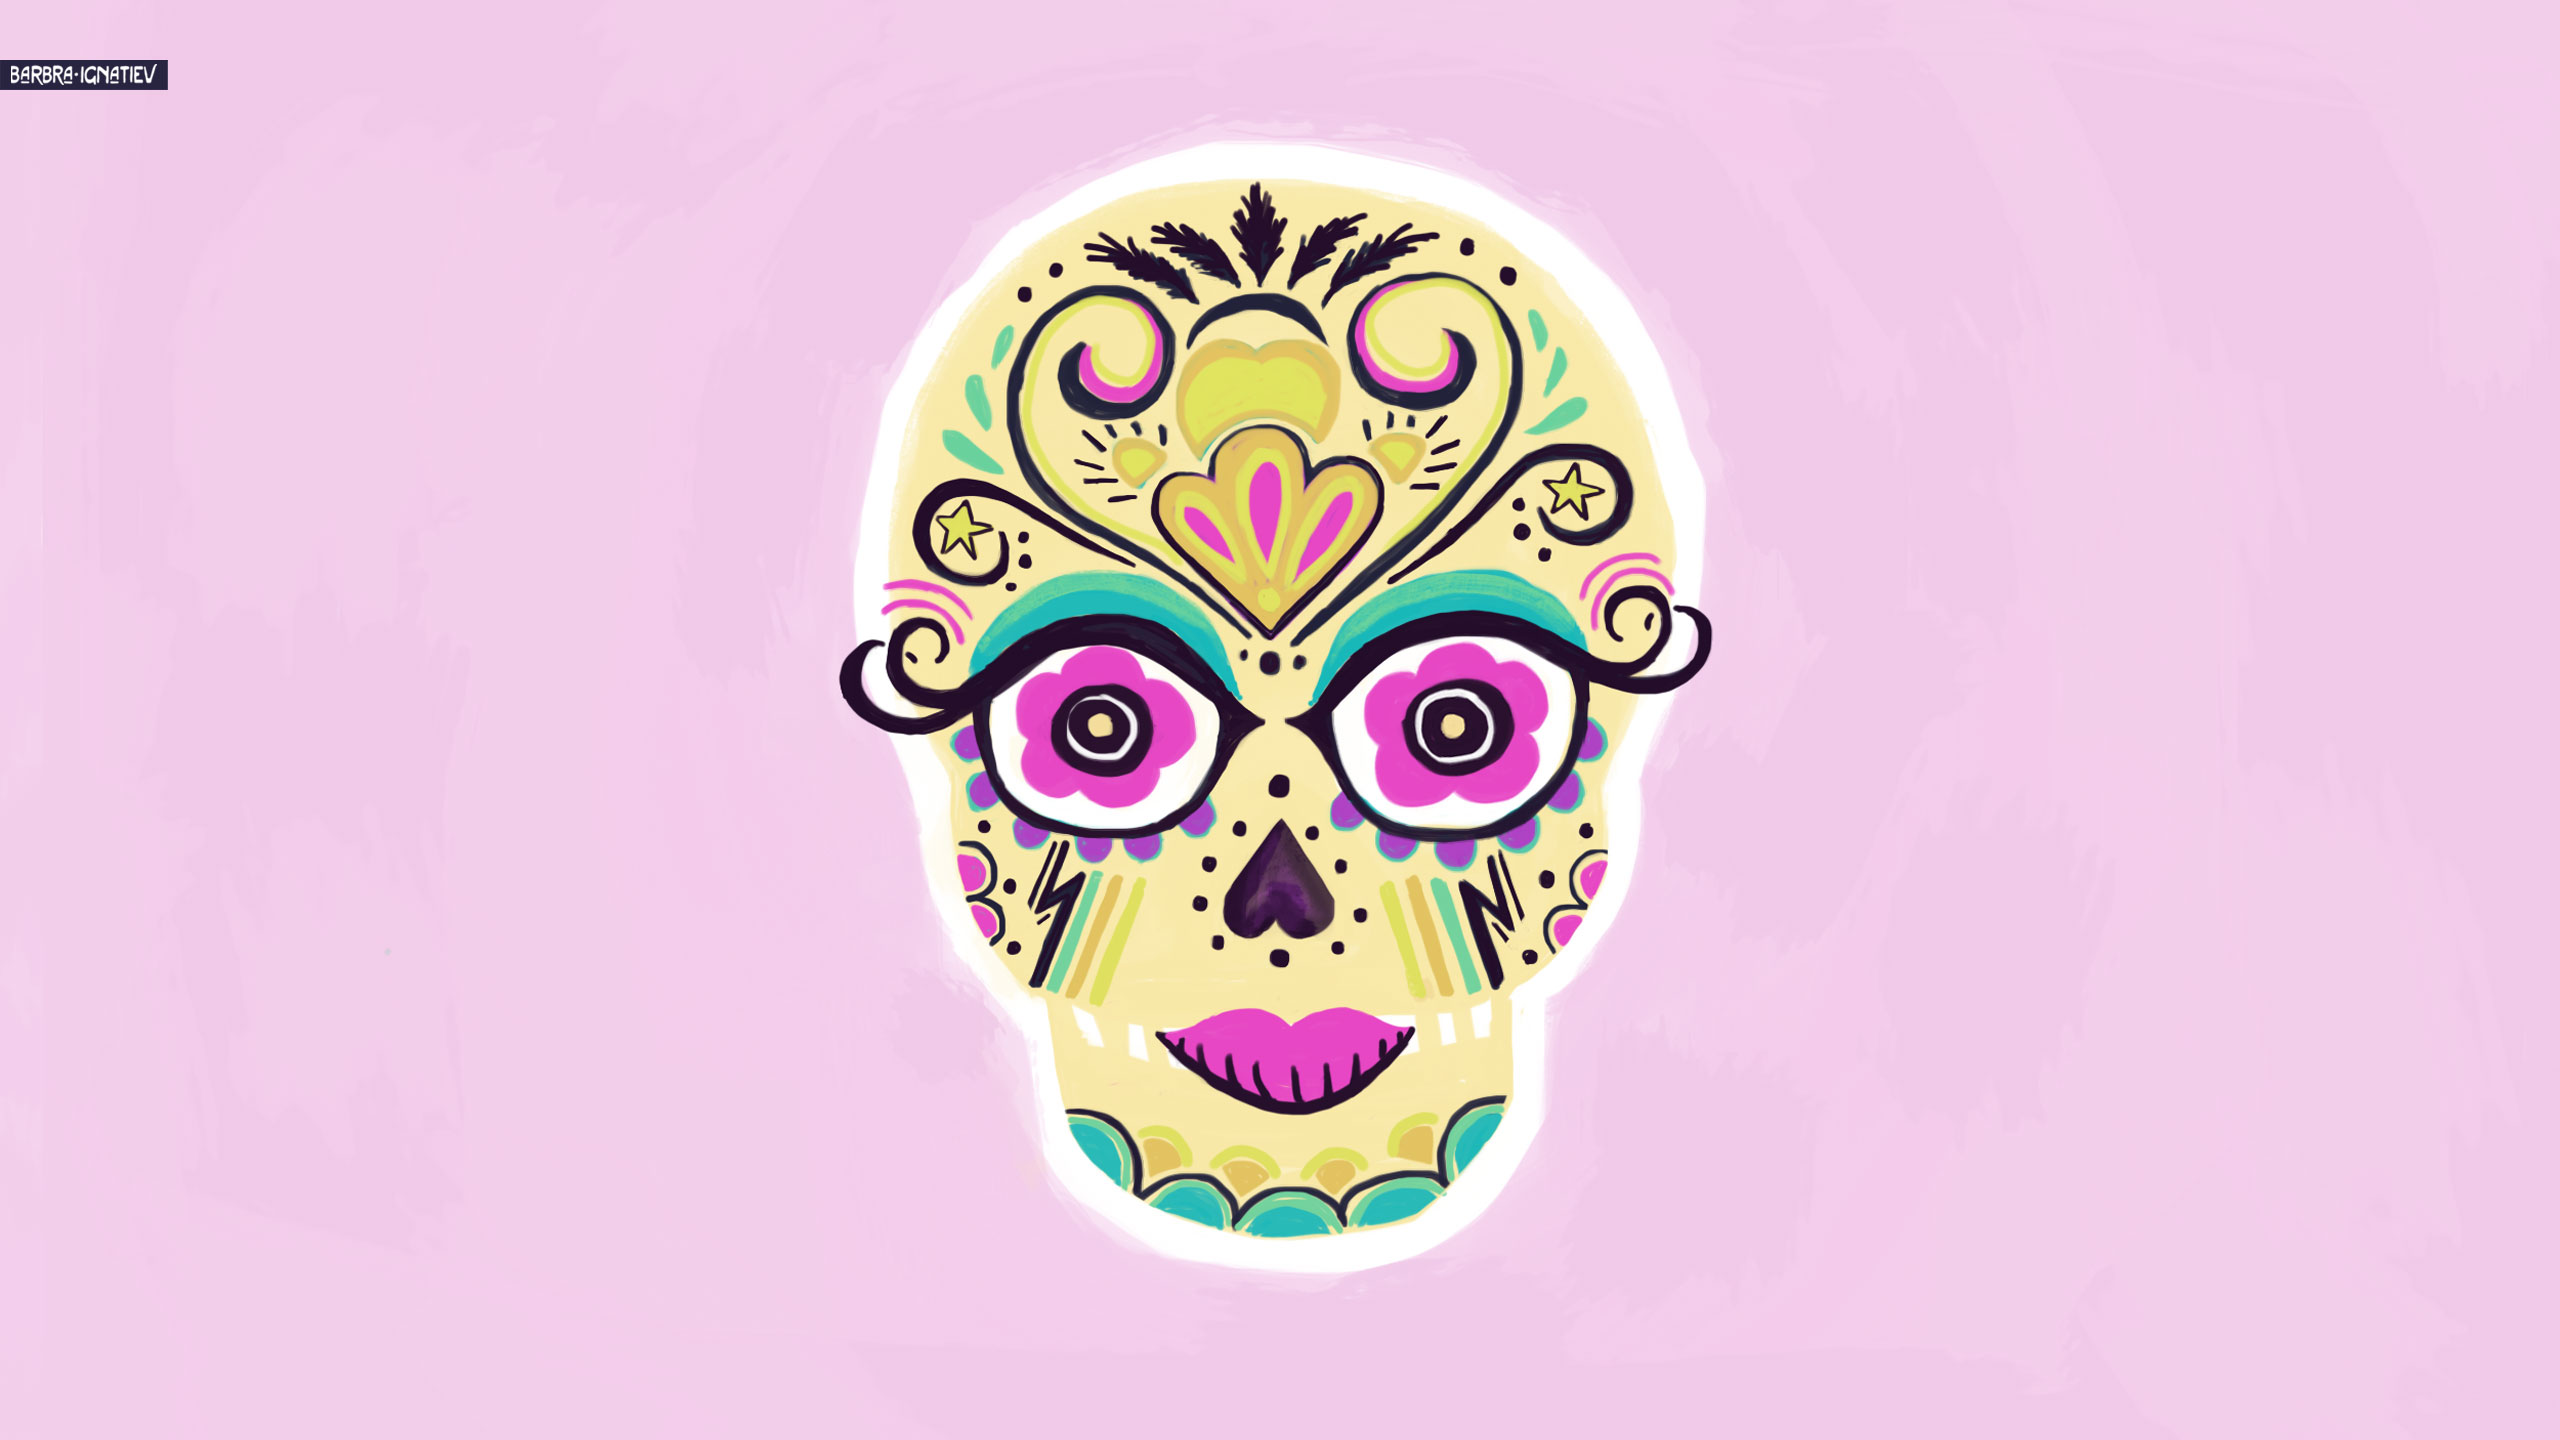 Sugar Skull Art Sugar Skull Desktop Wallpaper Sugar Skull 2560x1440